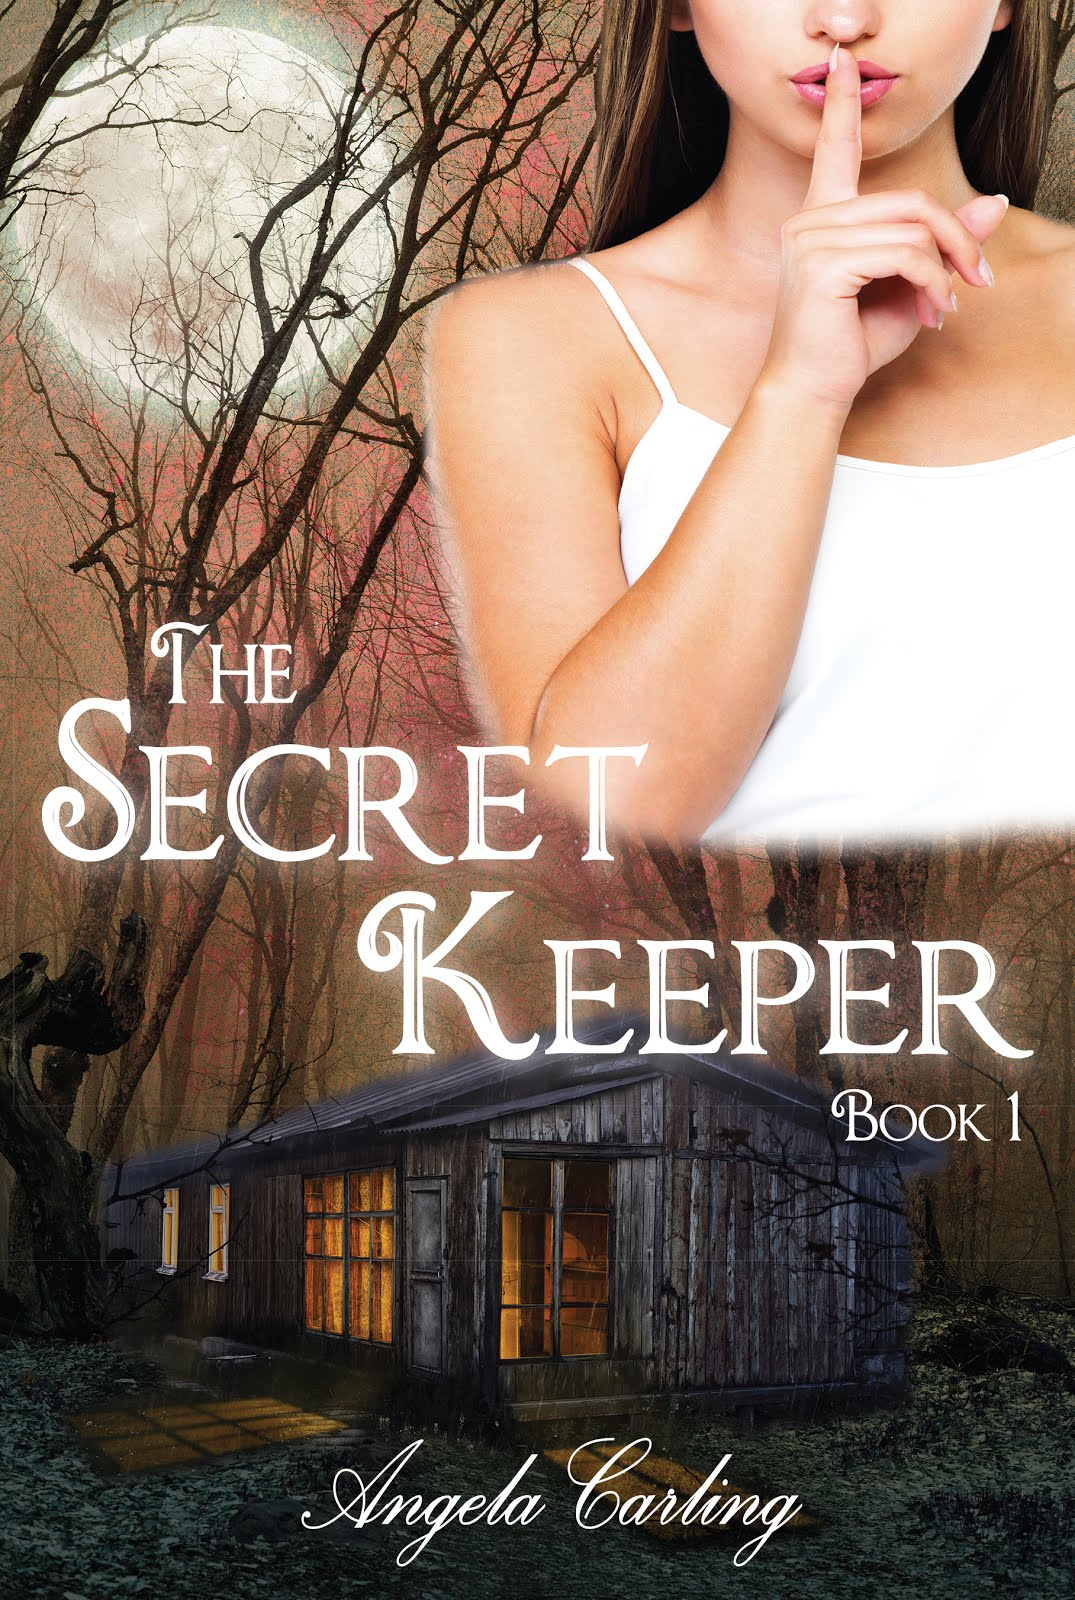 The Secret Keeper Series